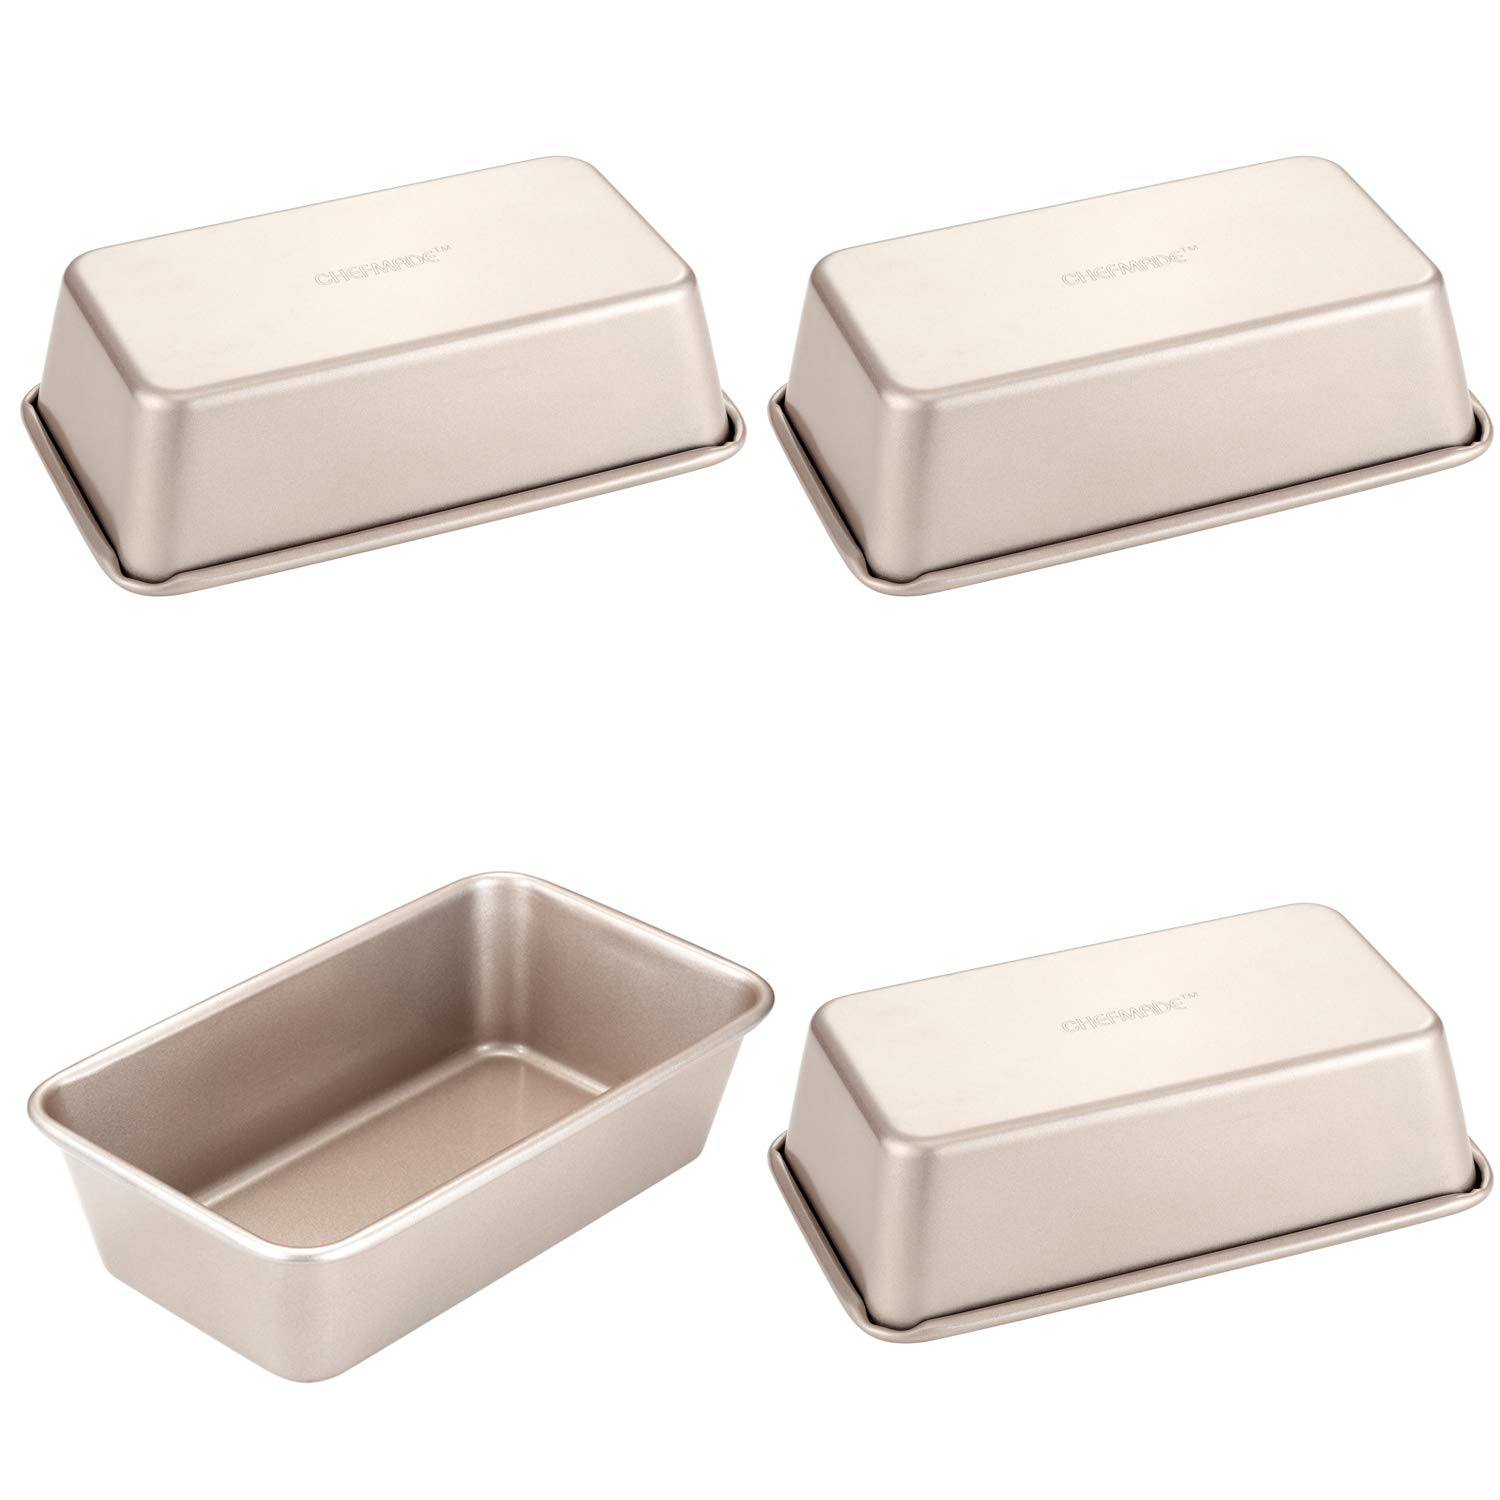 CHEFMADE Mini Rectangular Loaf Pan Set, 4Pcs 4-Inch Non-stick Carbon Steel Bread pan, FDA Approved for Oven Baking (Champagne Gold)